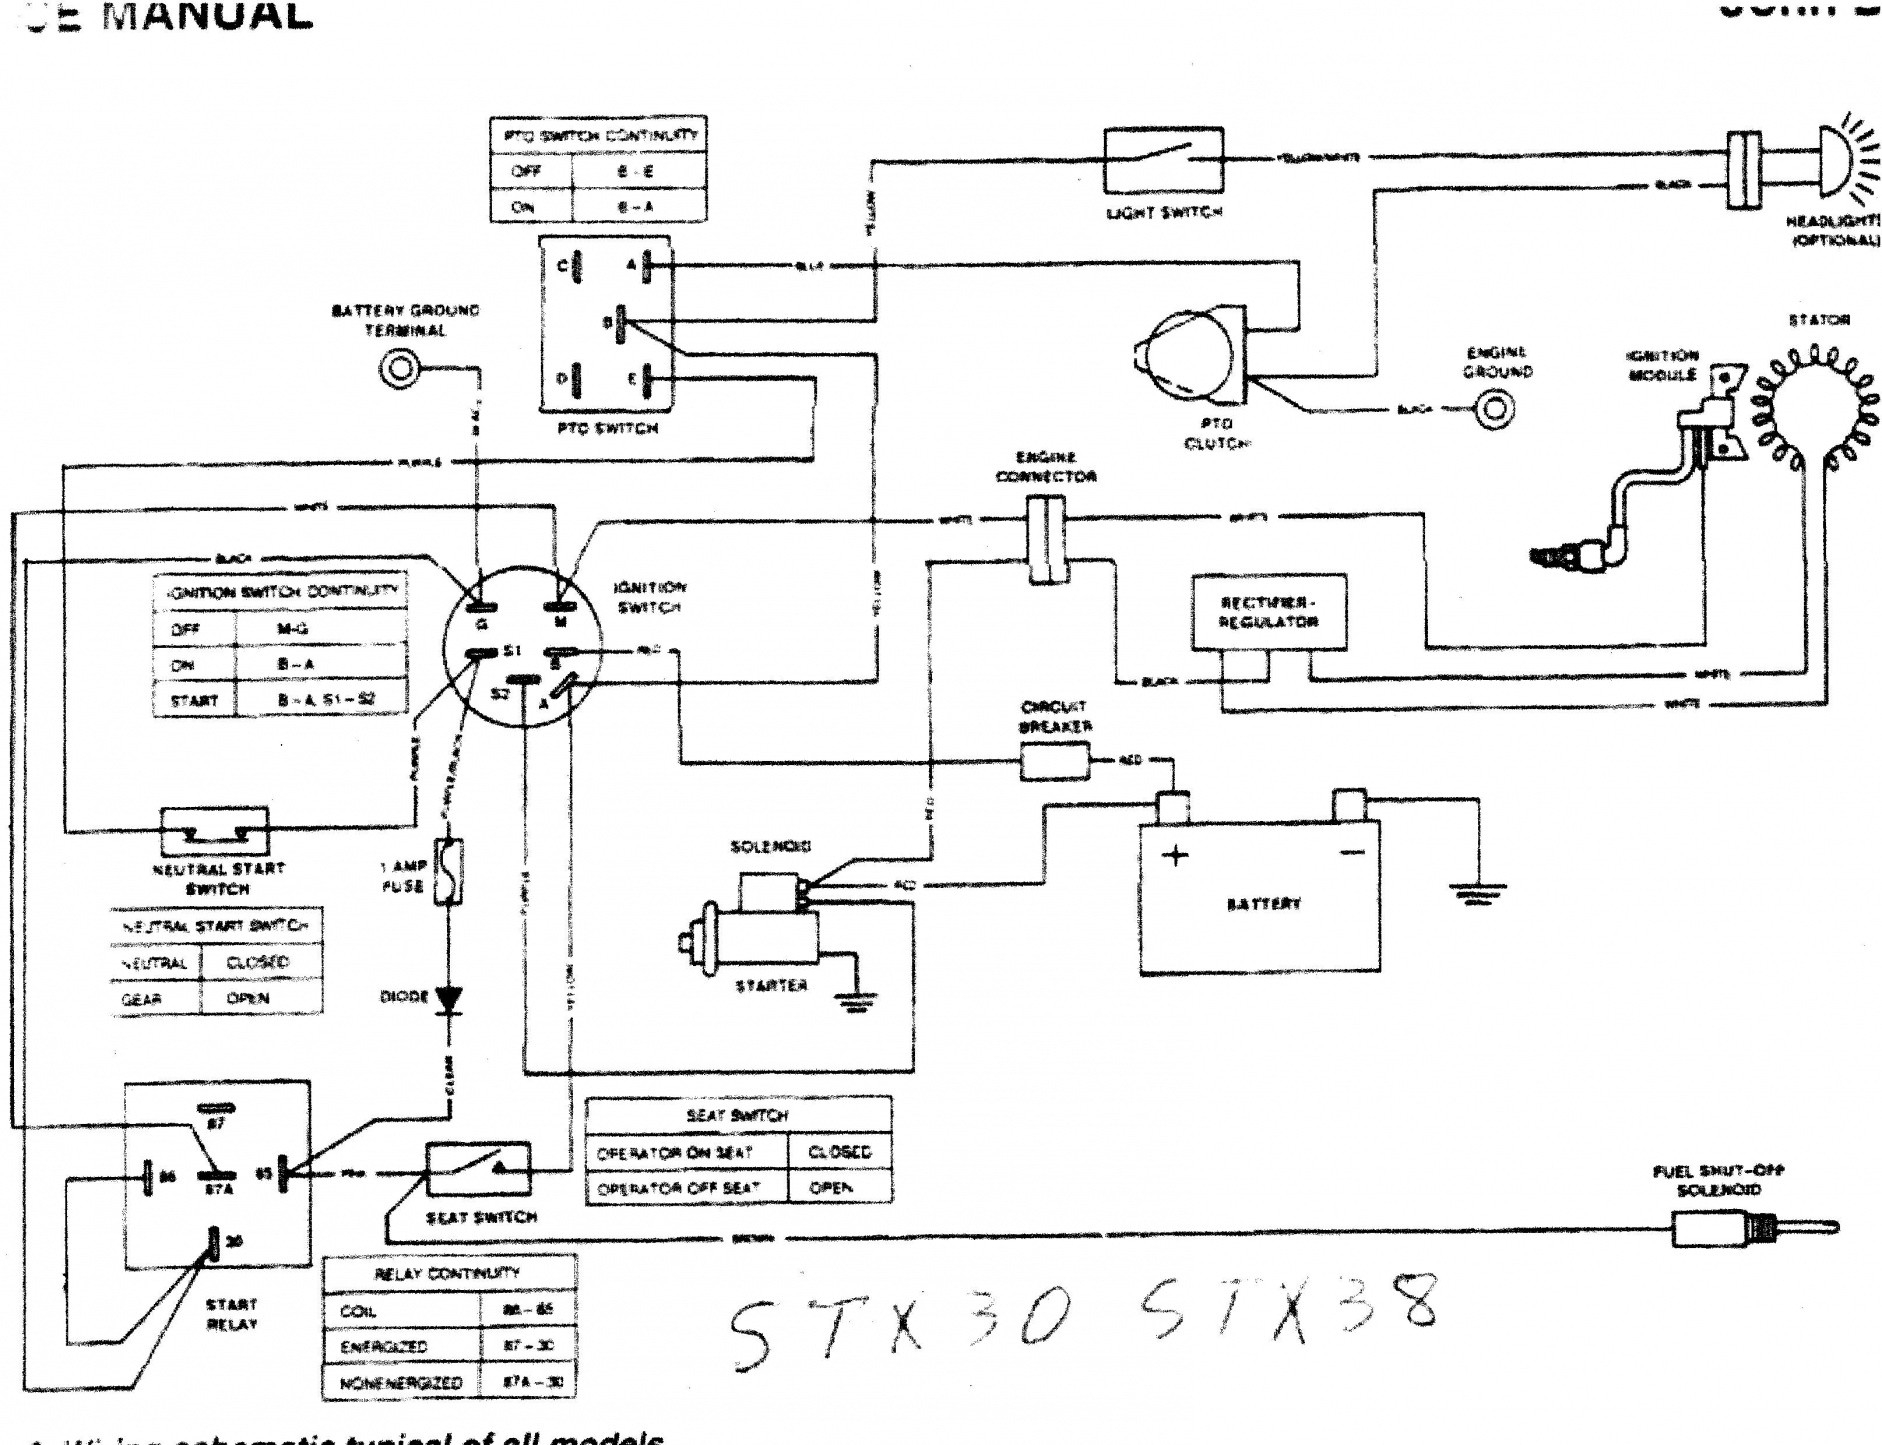 john deere 40 wiring diagram free download john deere 2010 wiring diagram free download